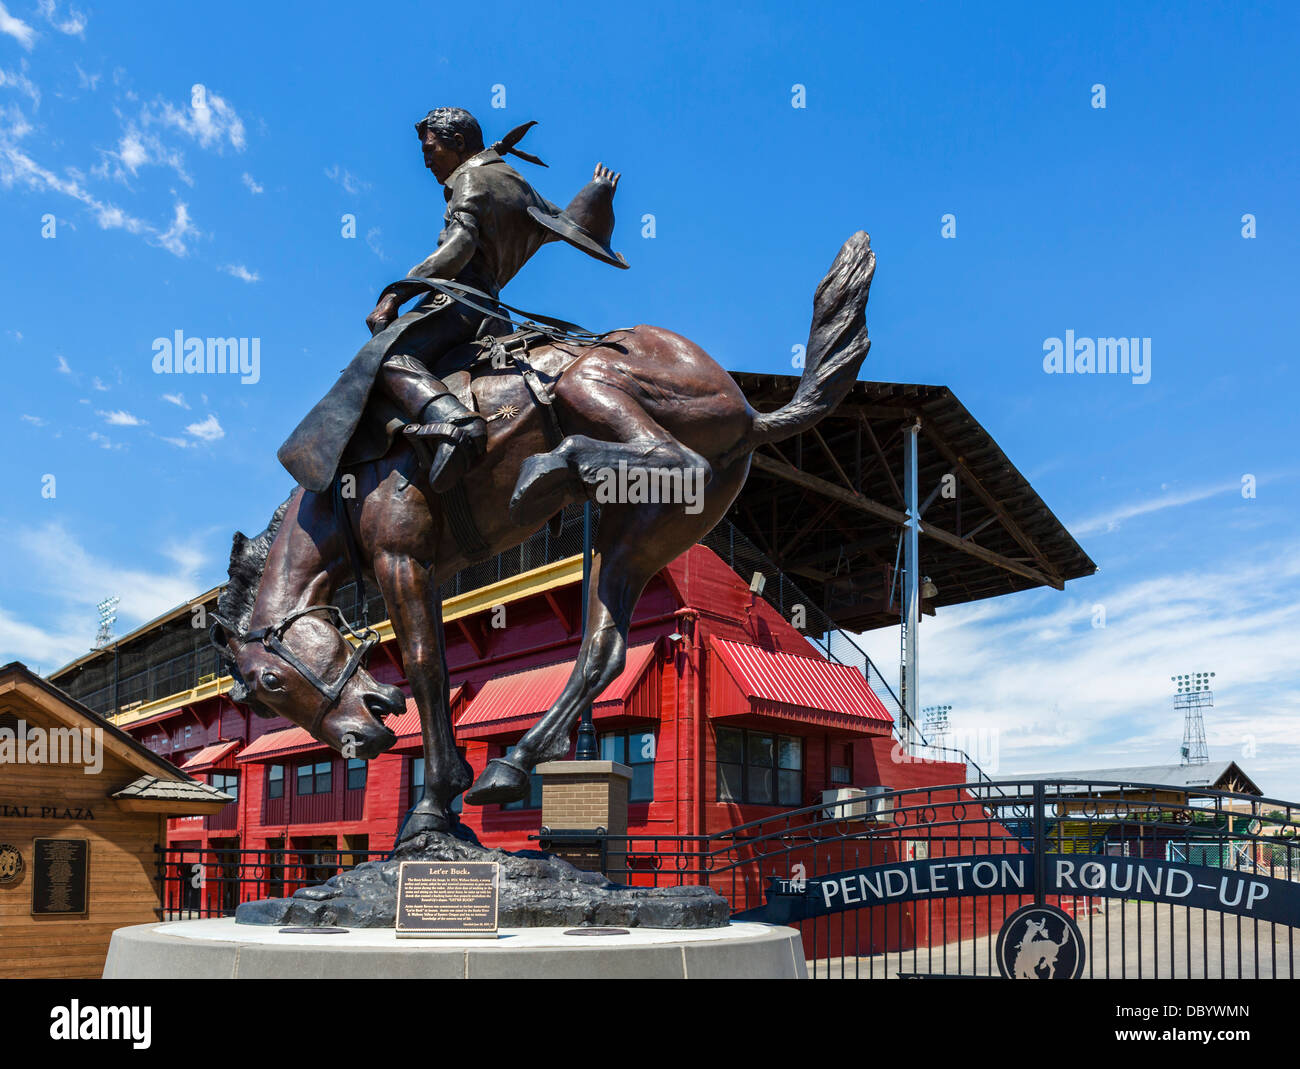 Let'er Buck sculpture in front of the Pendleton Round-Up rodeo stadium, Pendleton, Oregon, USA - Stock Image